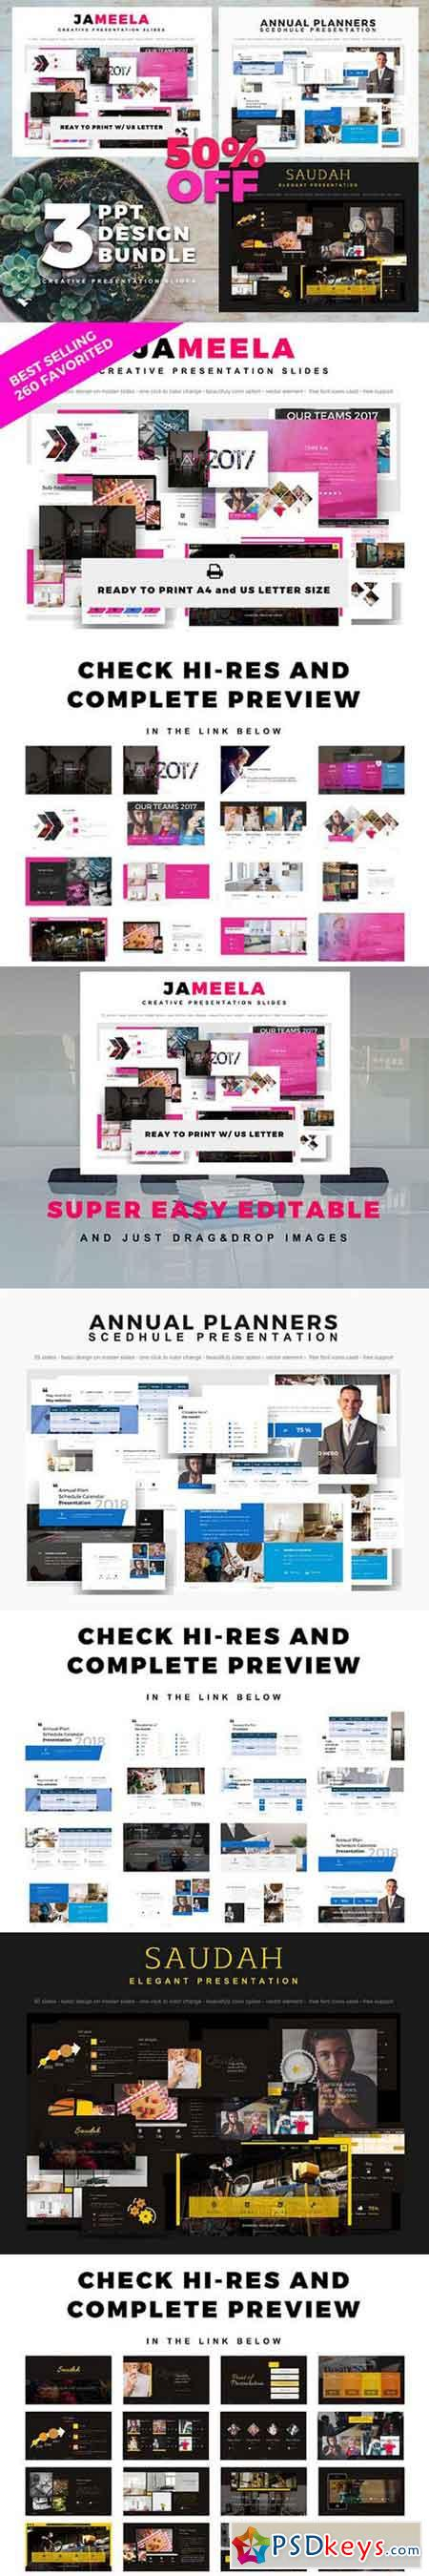 Bundle powerpoint design template 1674332